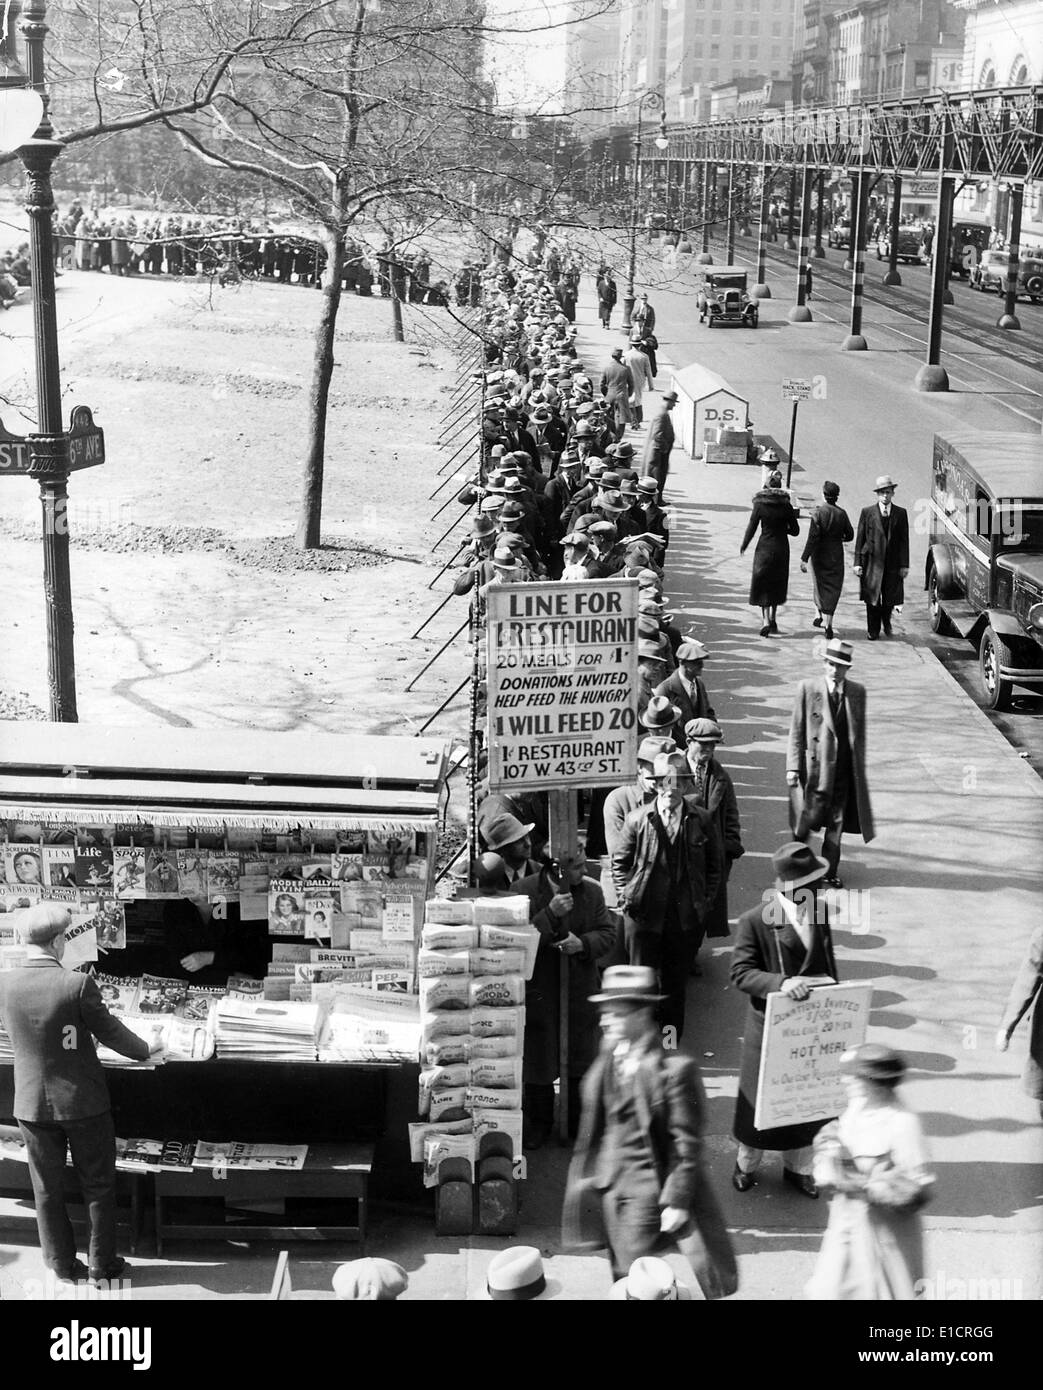 The Great Depression. Men line up for free bread and soup. New York City, 1930s - Stock Image